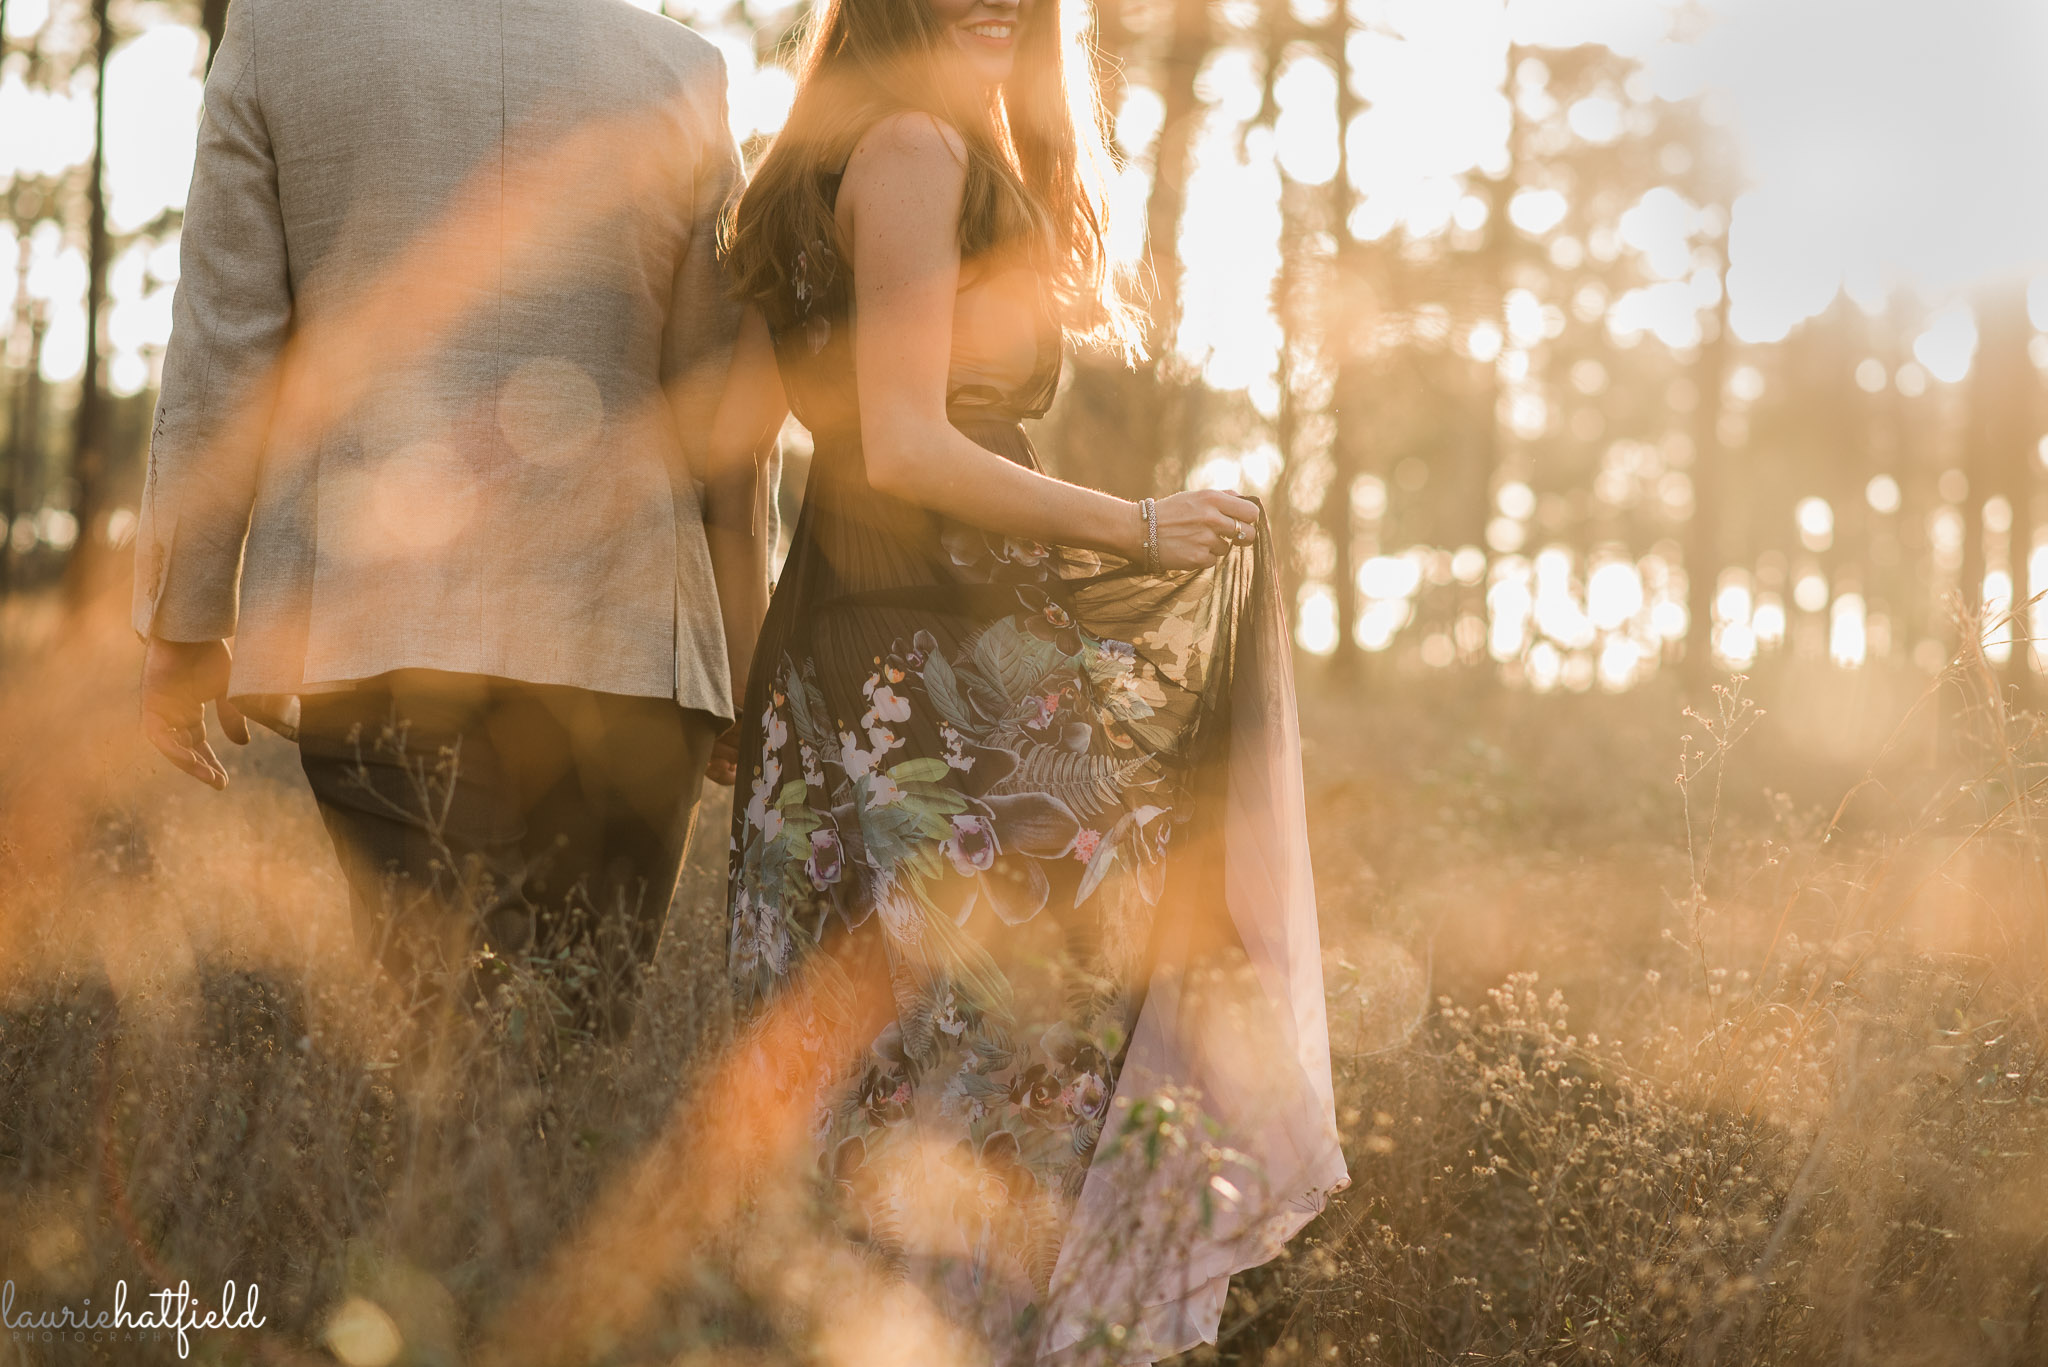 pregnant woman walking through field | Mobile AL maternity photographer